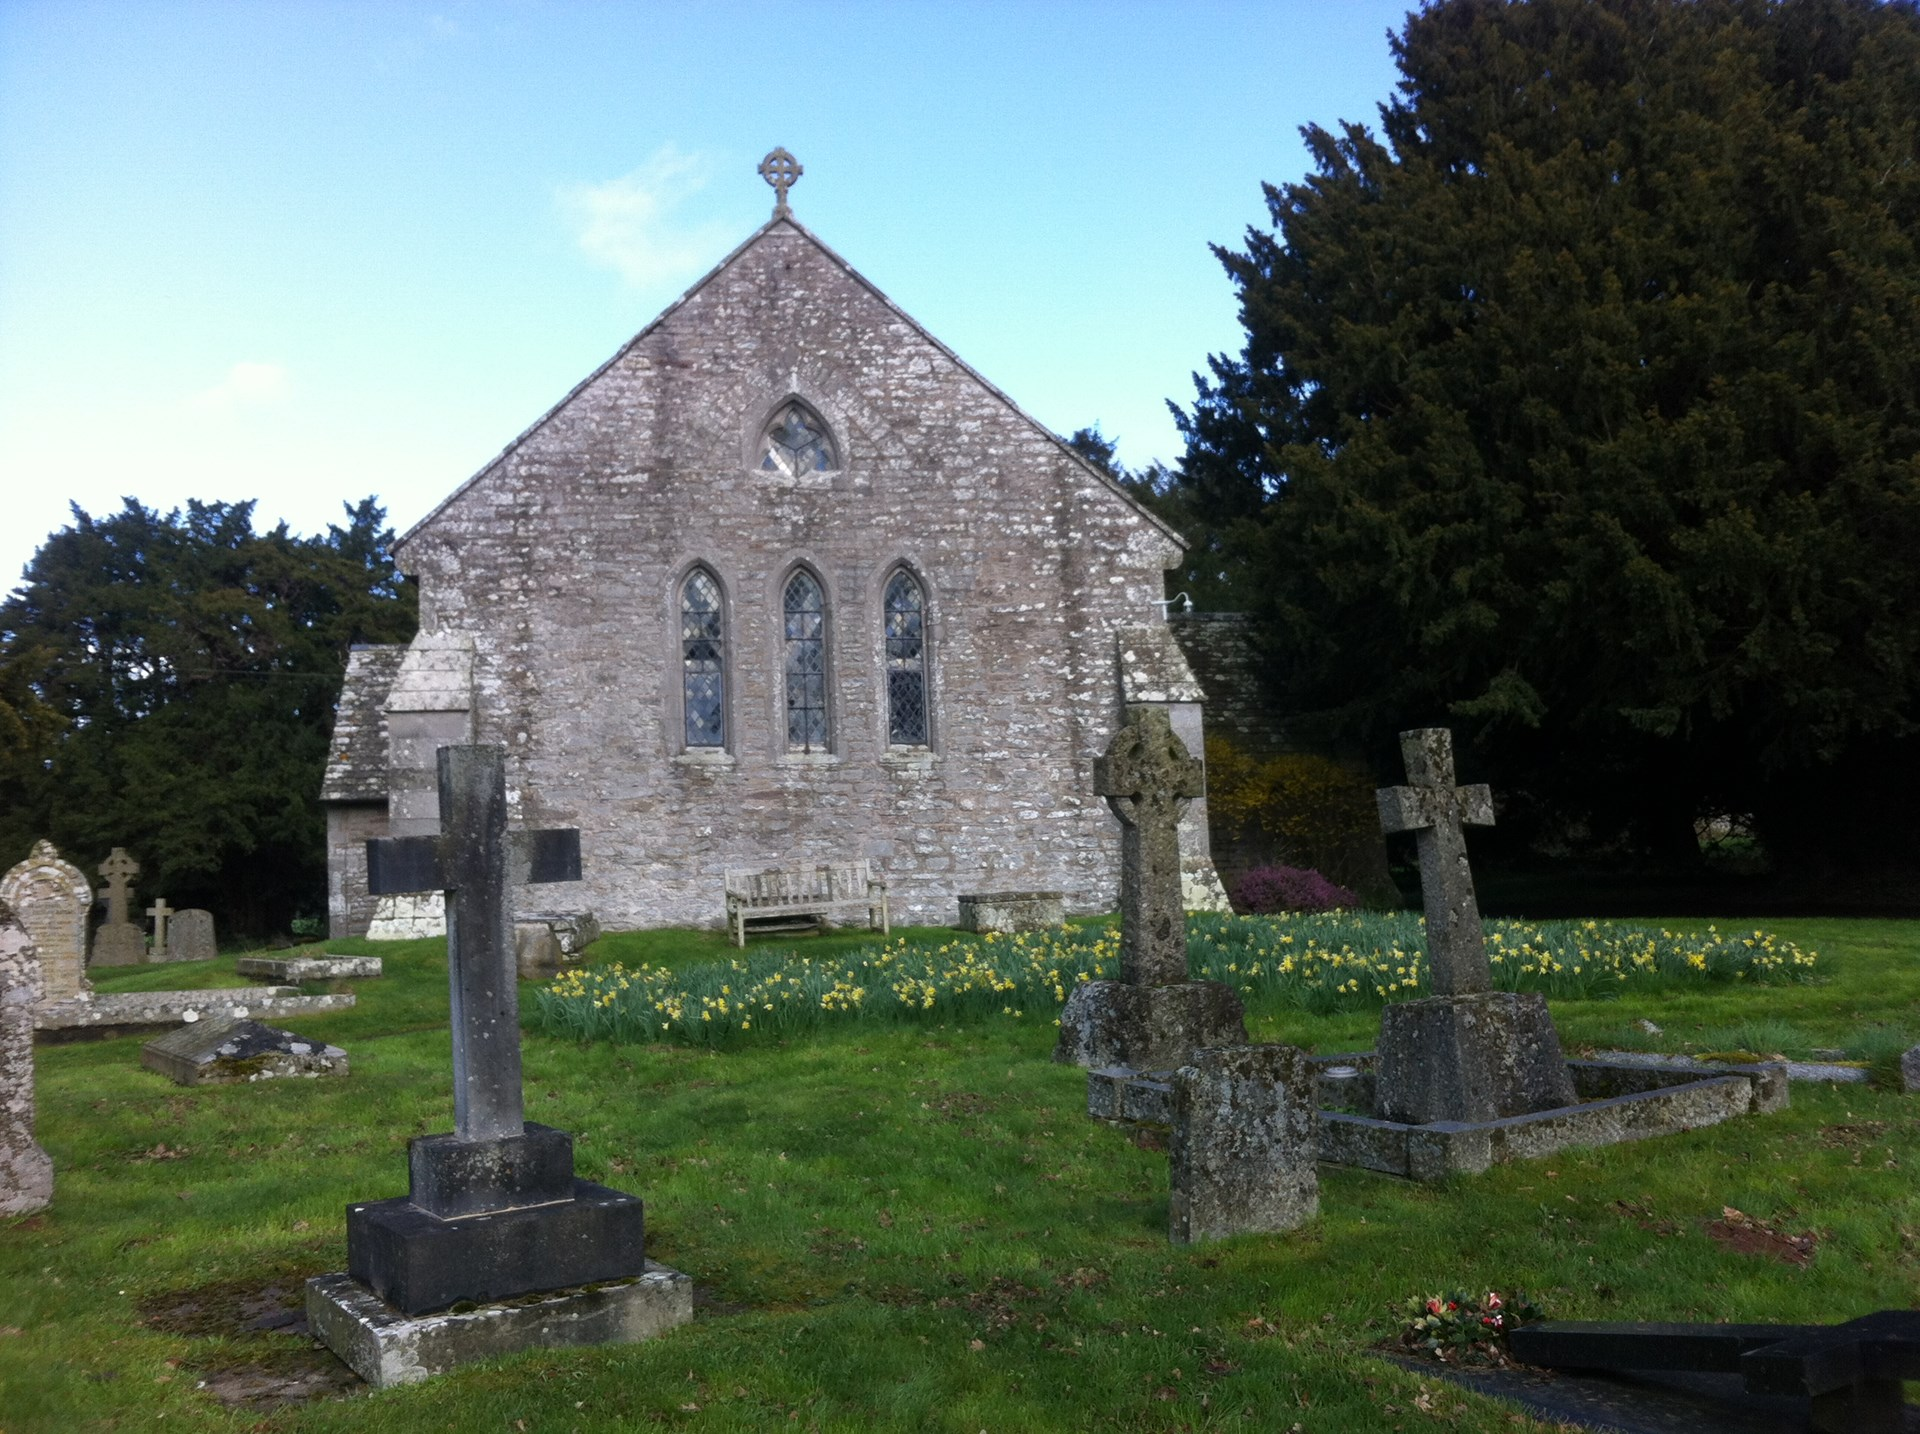 Church and churchyard in spring